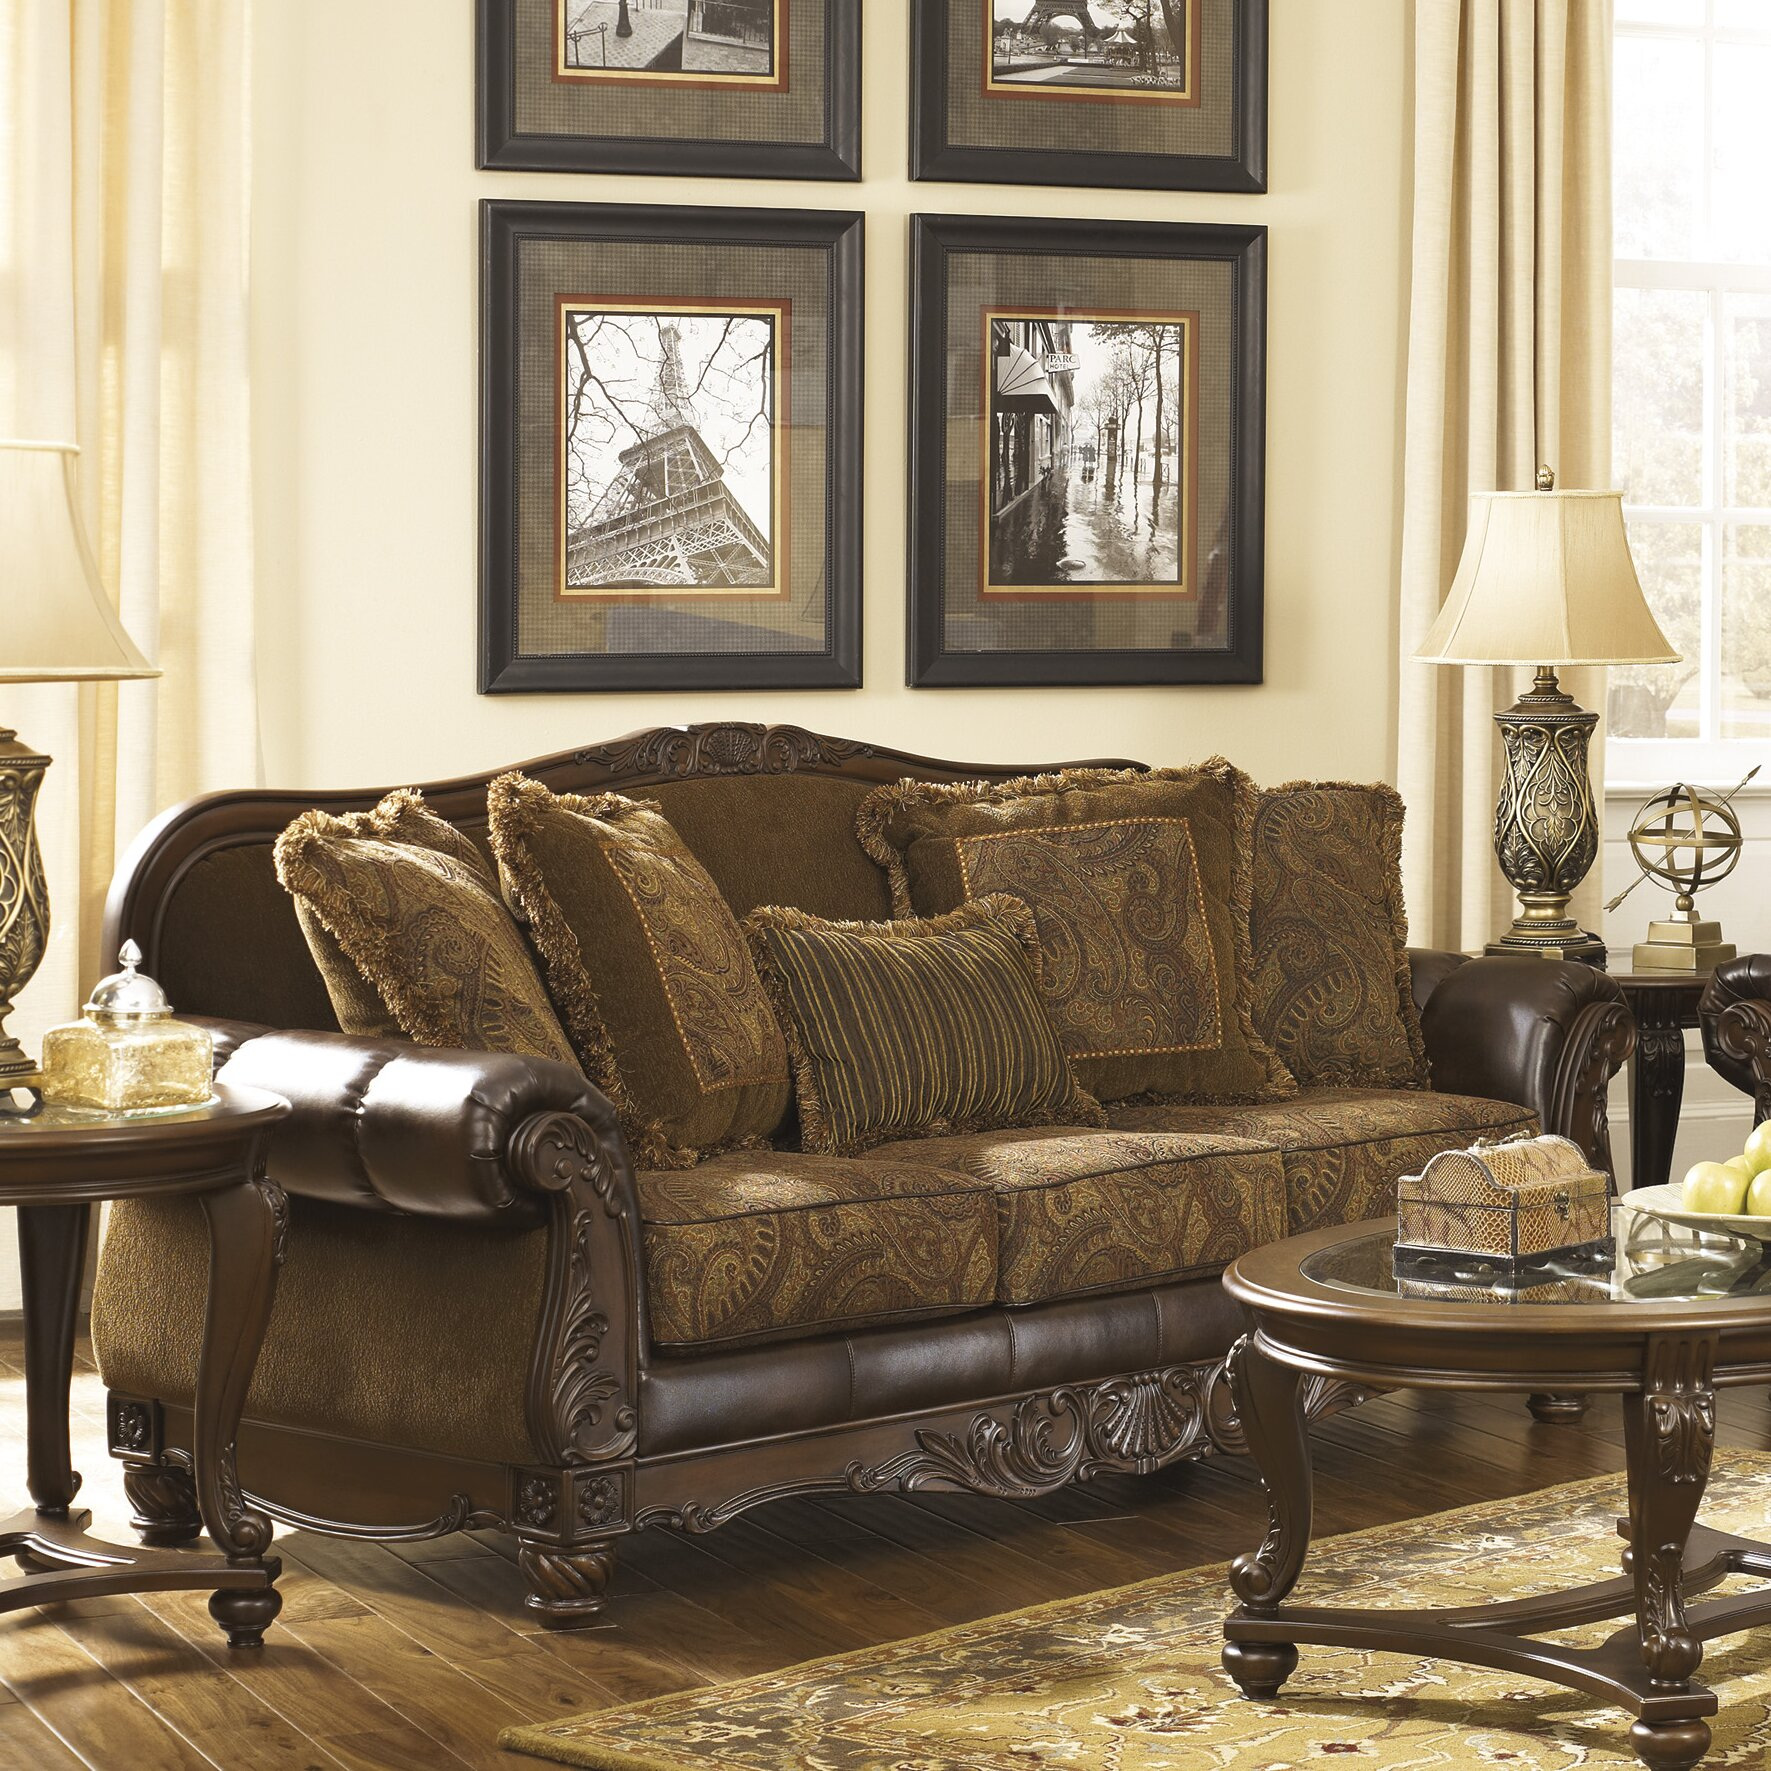 Ashley Signature Collection: Signature Design By Ashley Newbern Living Room Collection